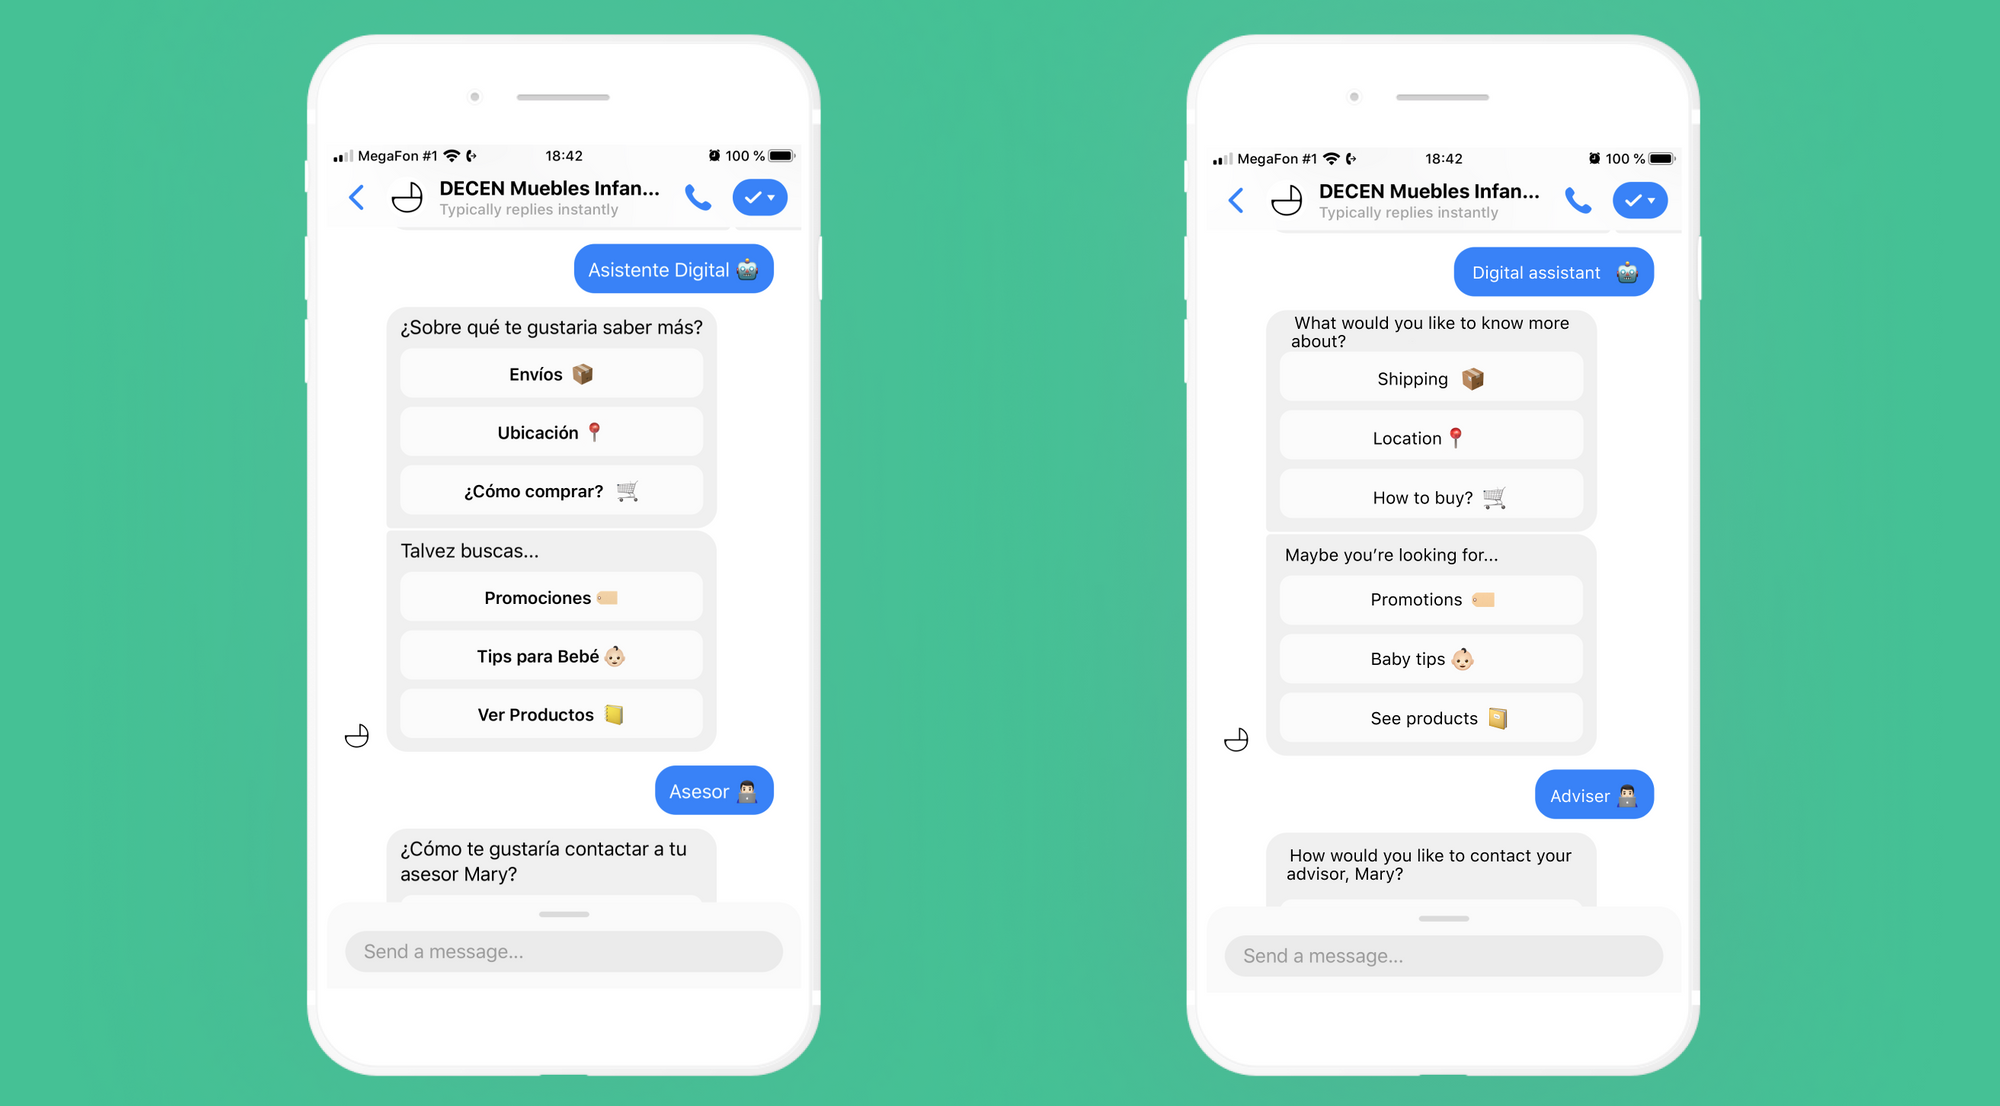 FAQ functionality into their chatbot